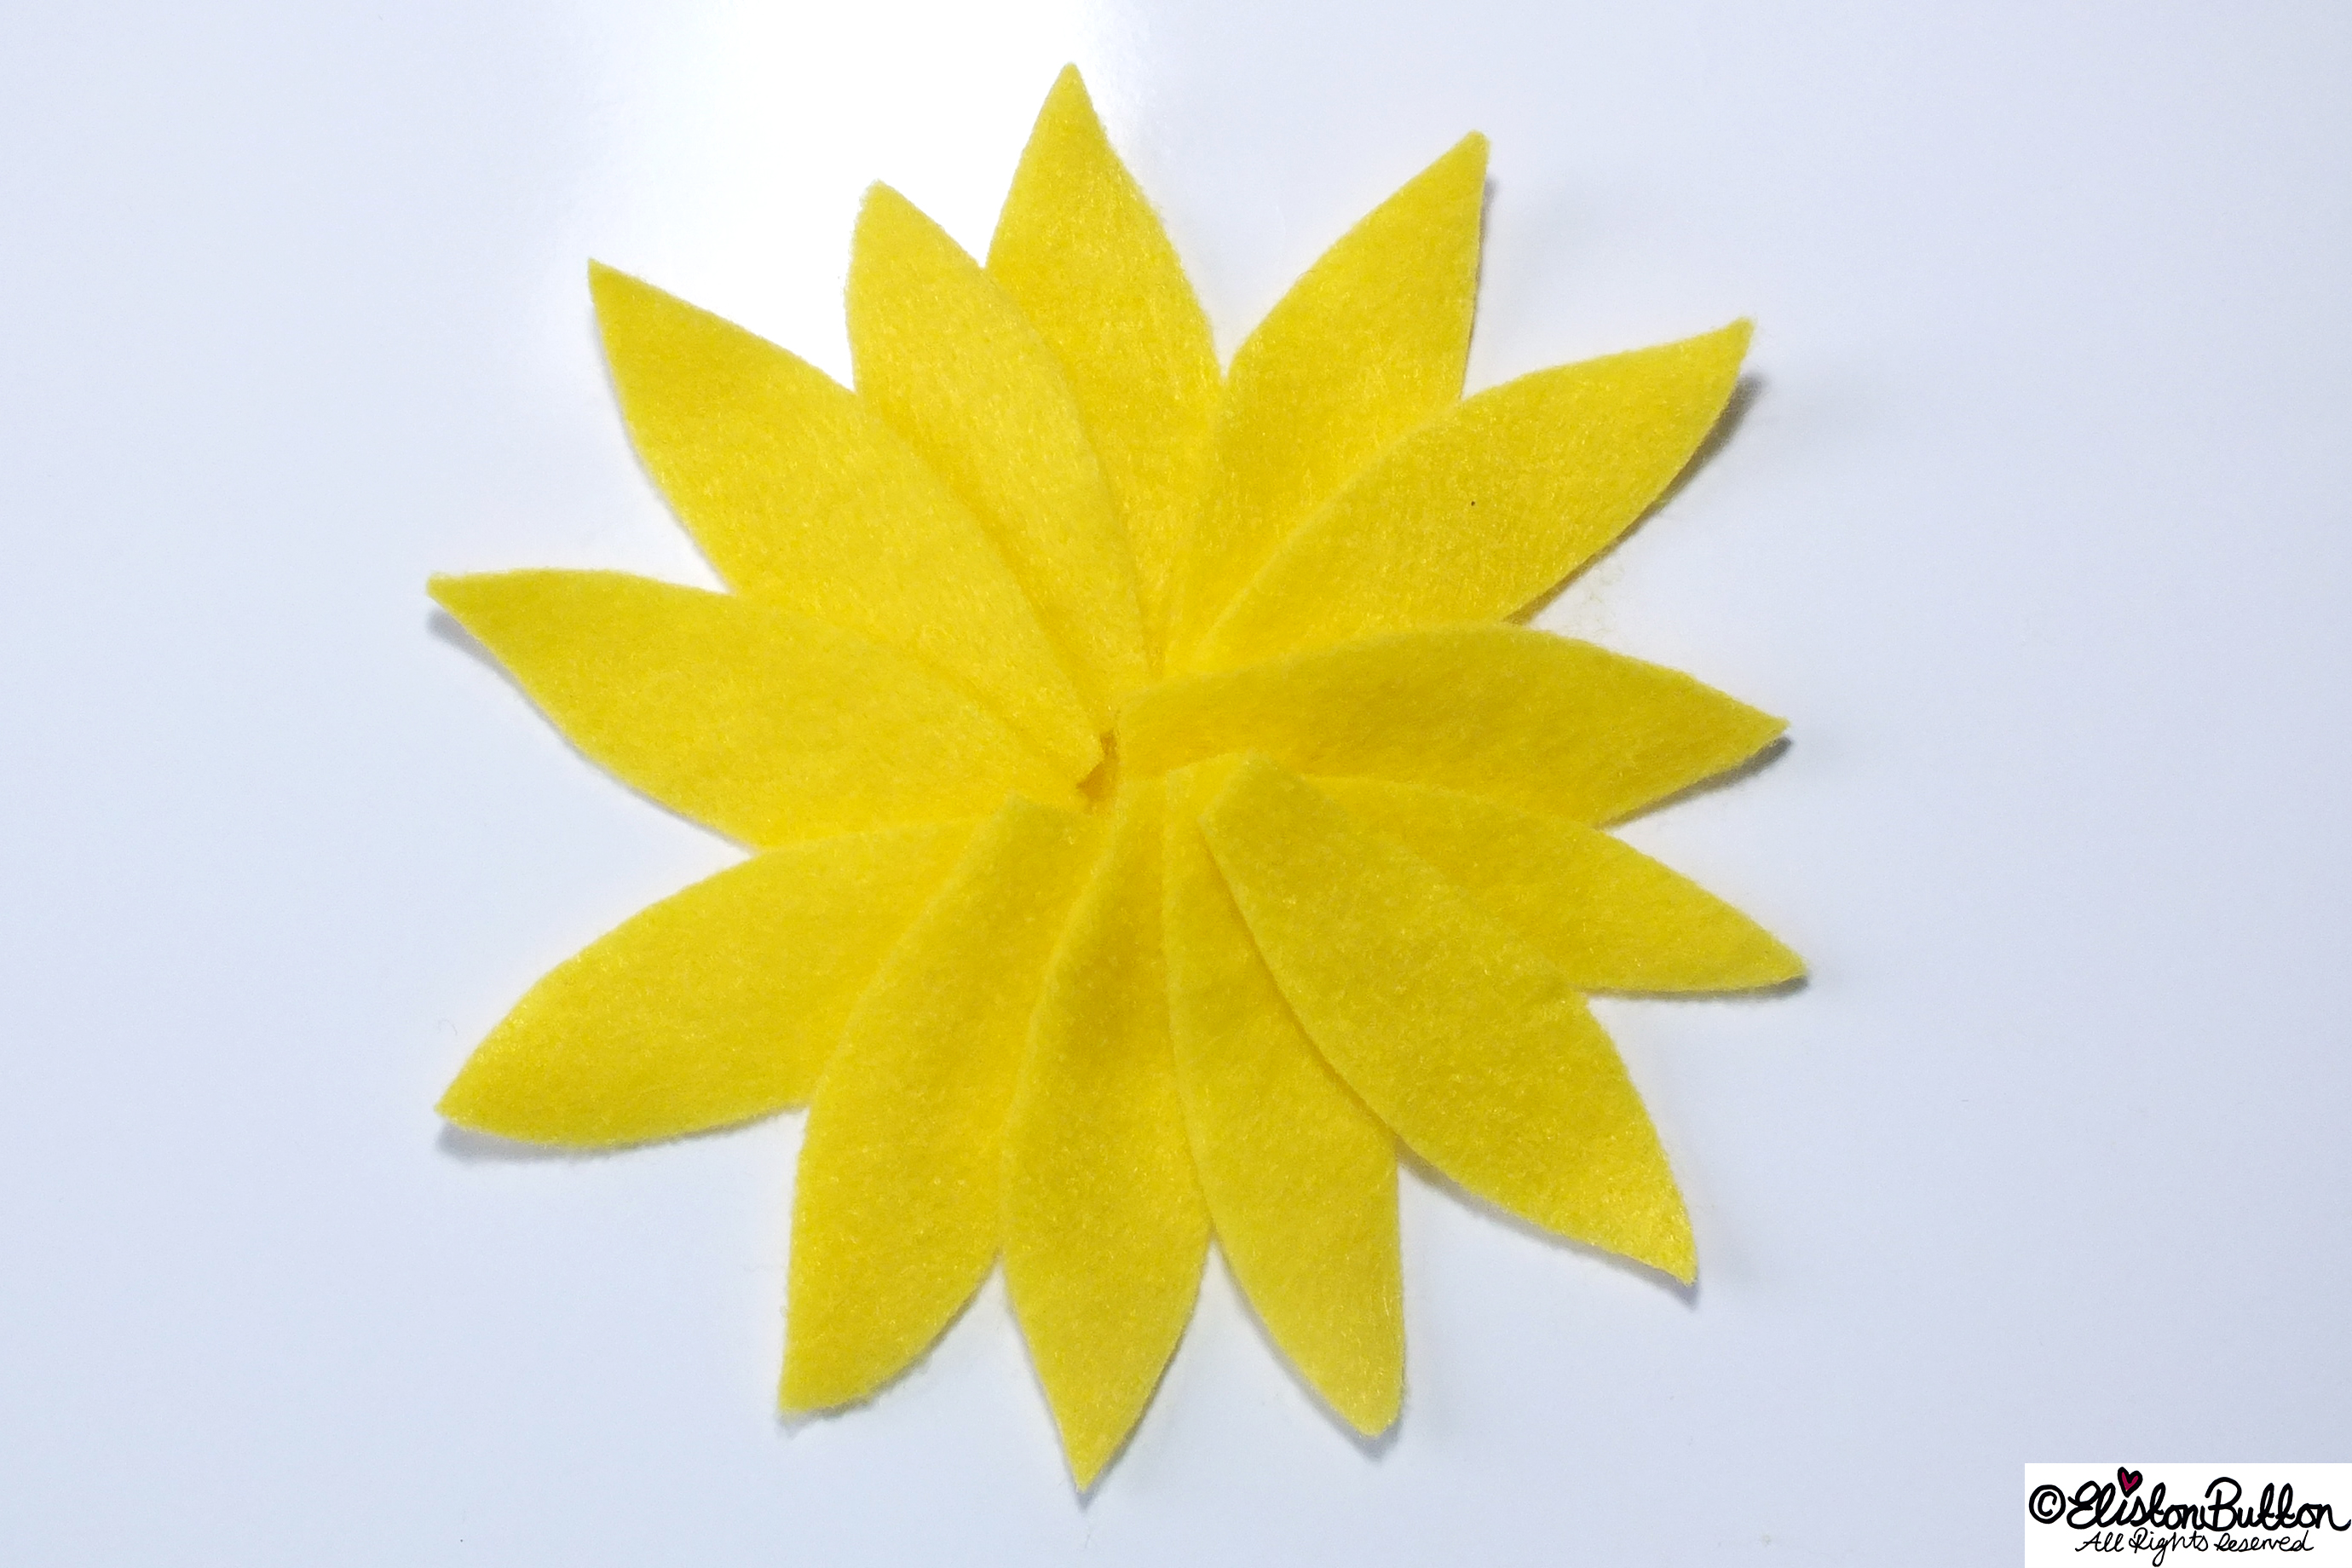 Sunshine Happy Yellow Felt Petals in a Flower Shape - 27 Before 27 - Sunny Days at www.elistonbutton.com - Eliston Button - That Crafty Kid – Art, Design, Craft & Adventure.